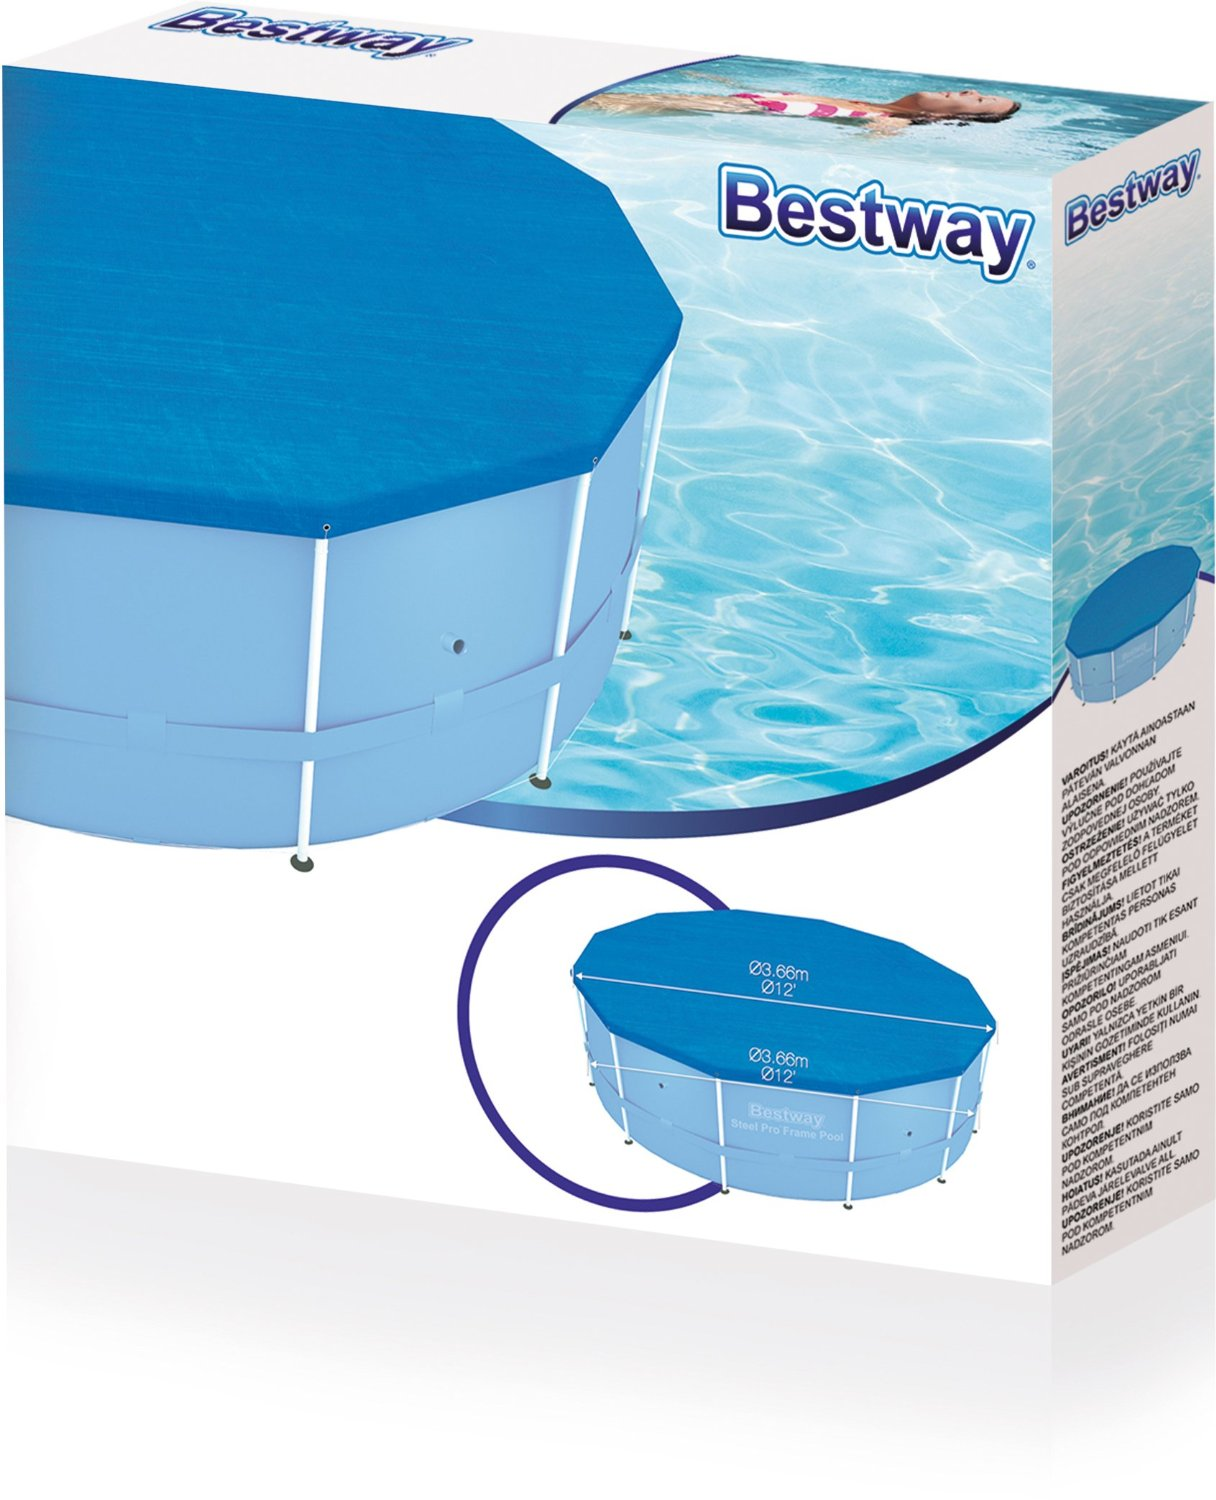 Rug Star Teppiche Preise New Bestway 15ft Steel Frame Paddling Swimming Pool